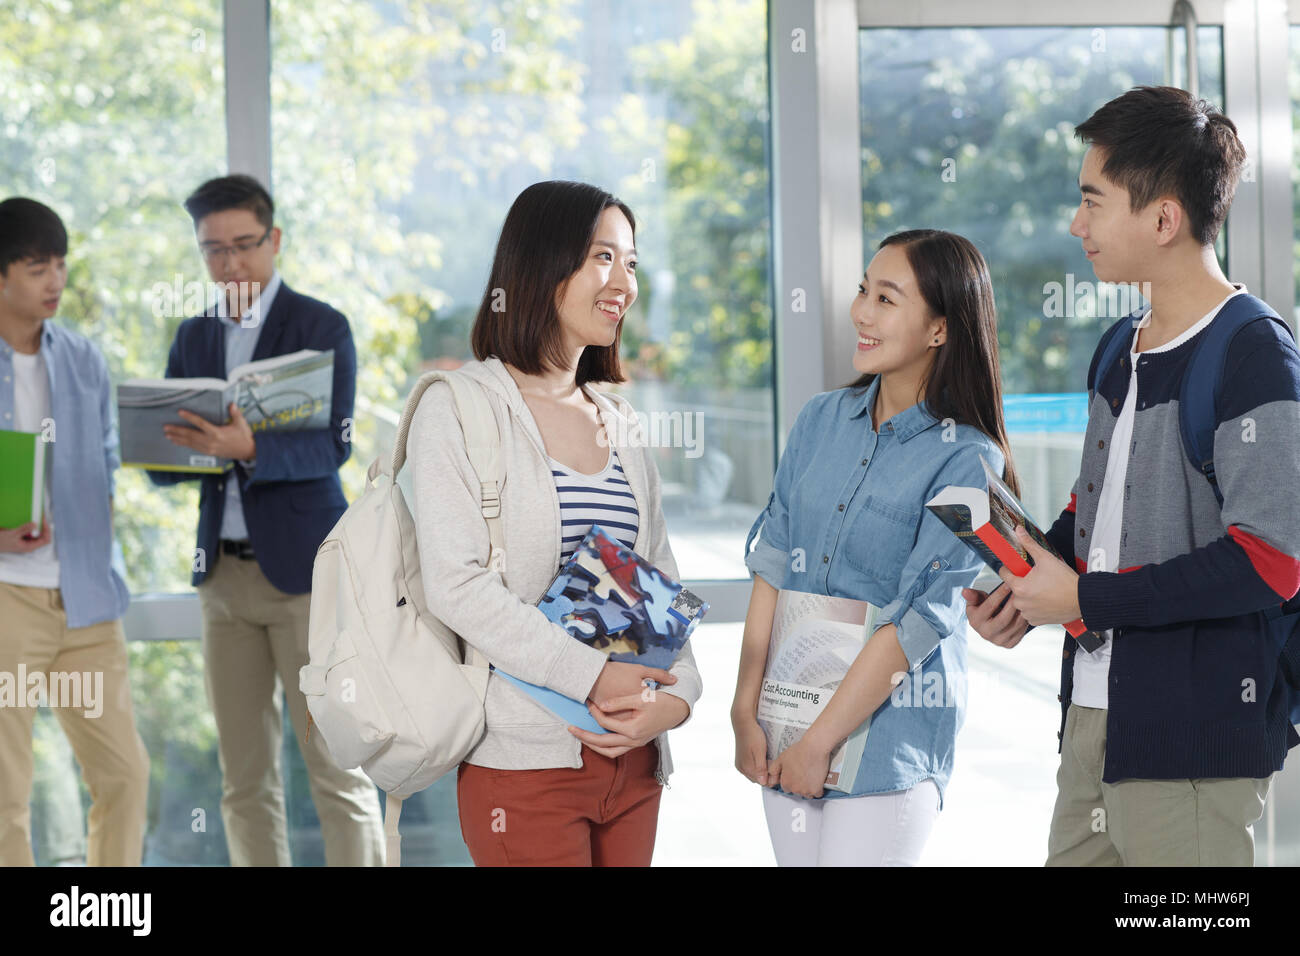 College students on campus in a conversation - Stock Image